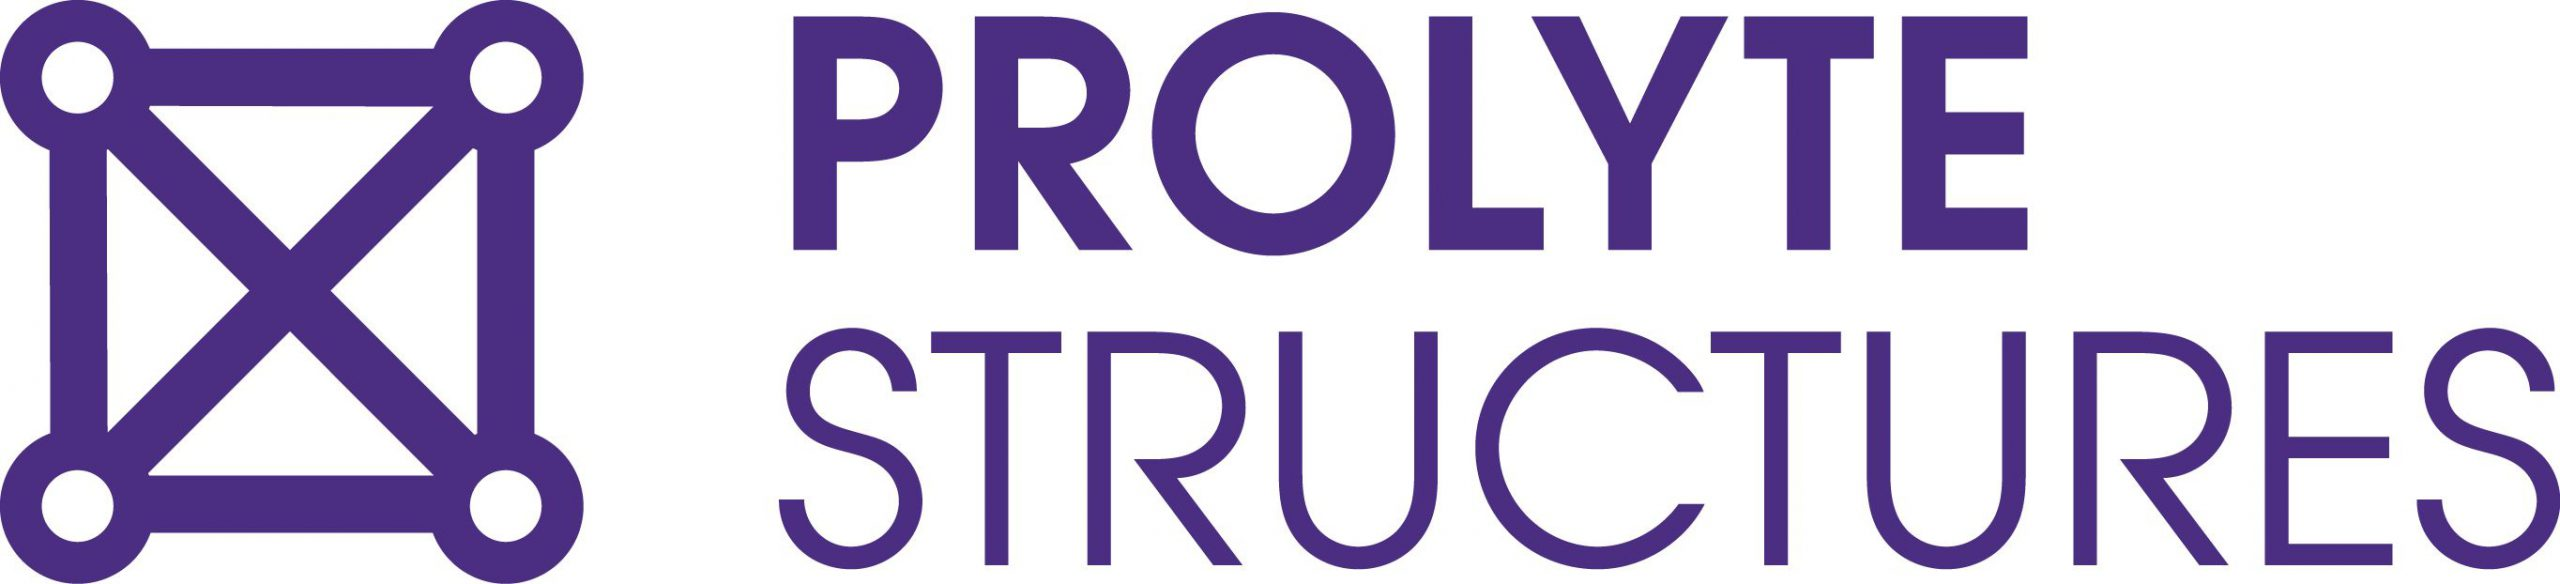 prolytestructures-logo